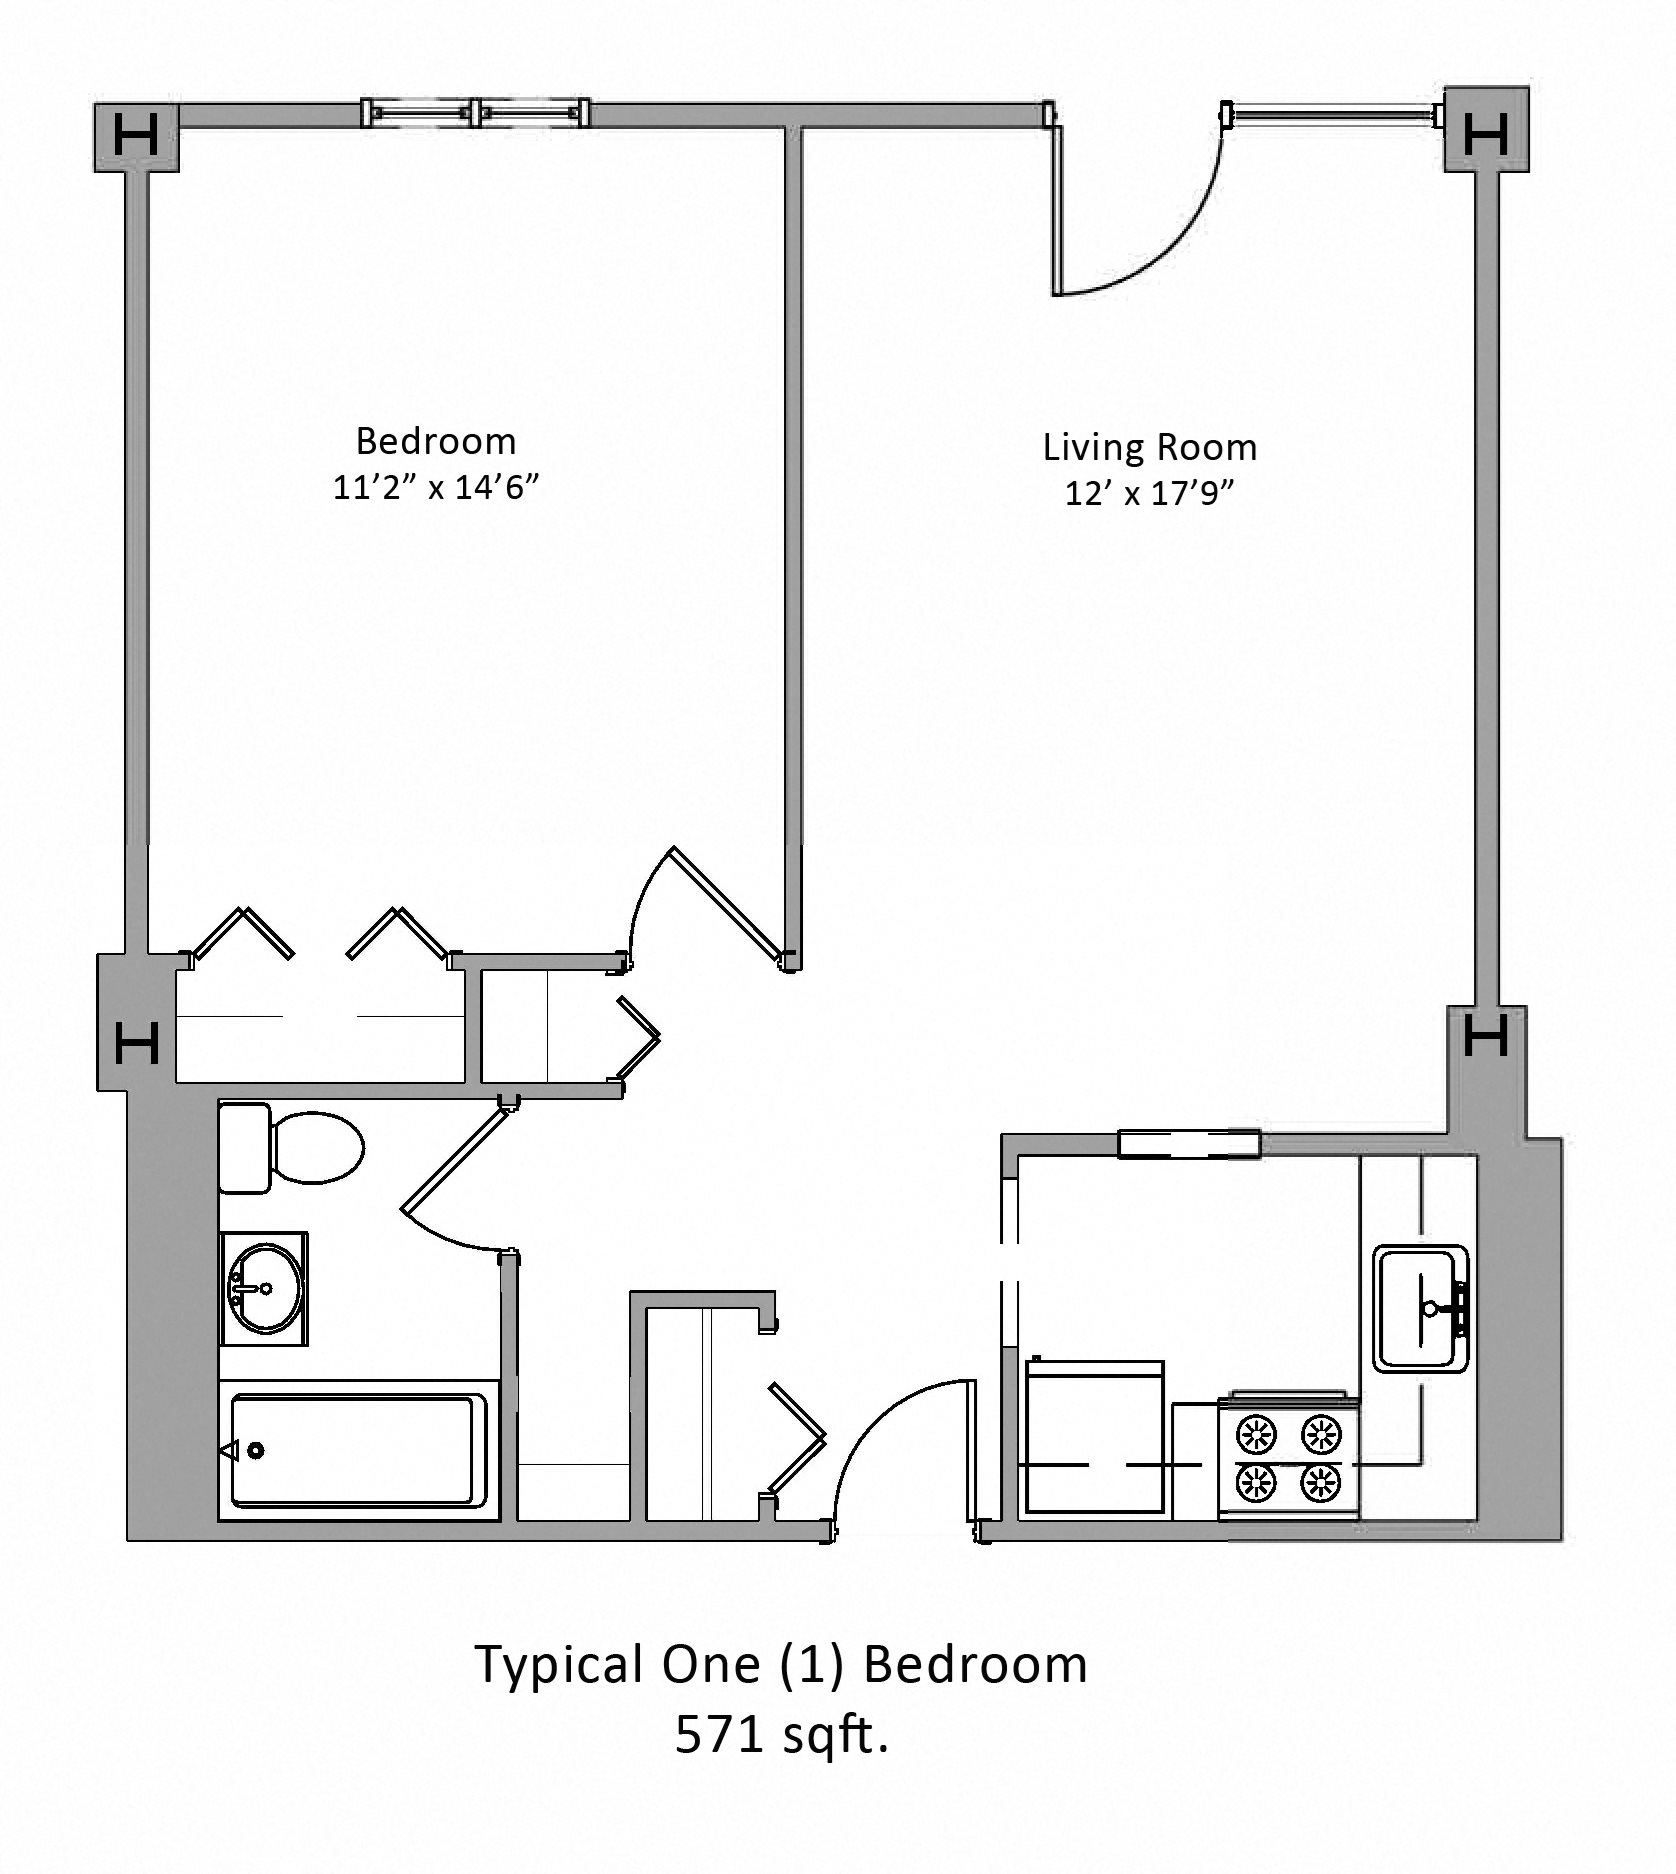 One bedroom floor plan at Jaclen Tower Apartments in Beverly, MA